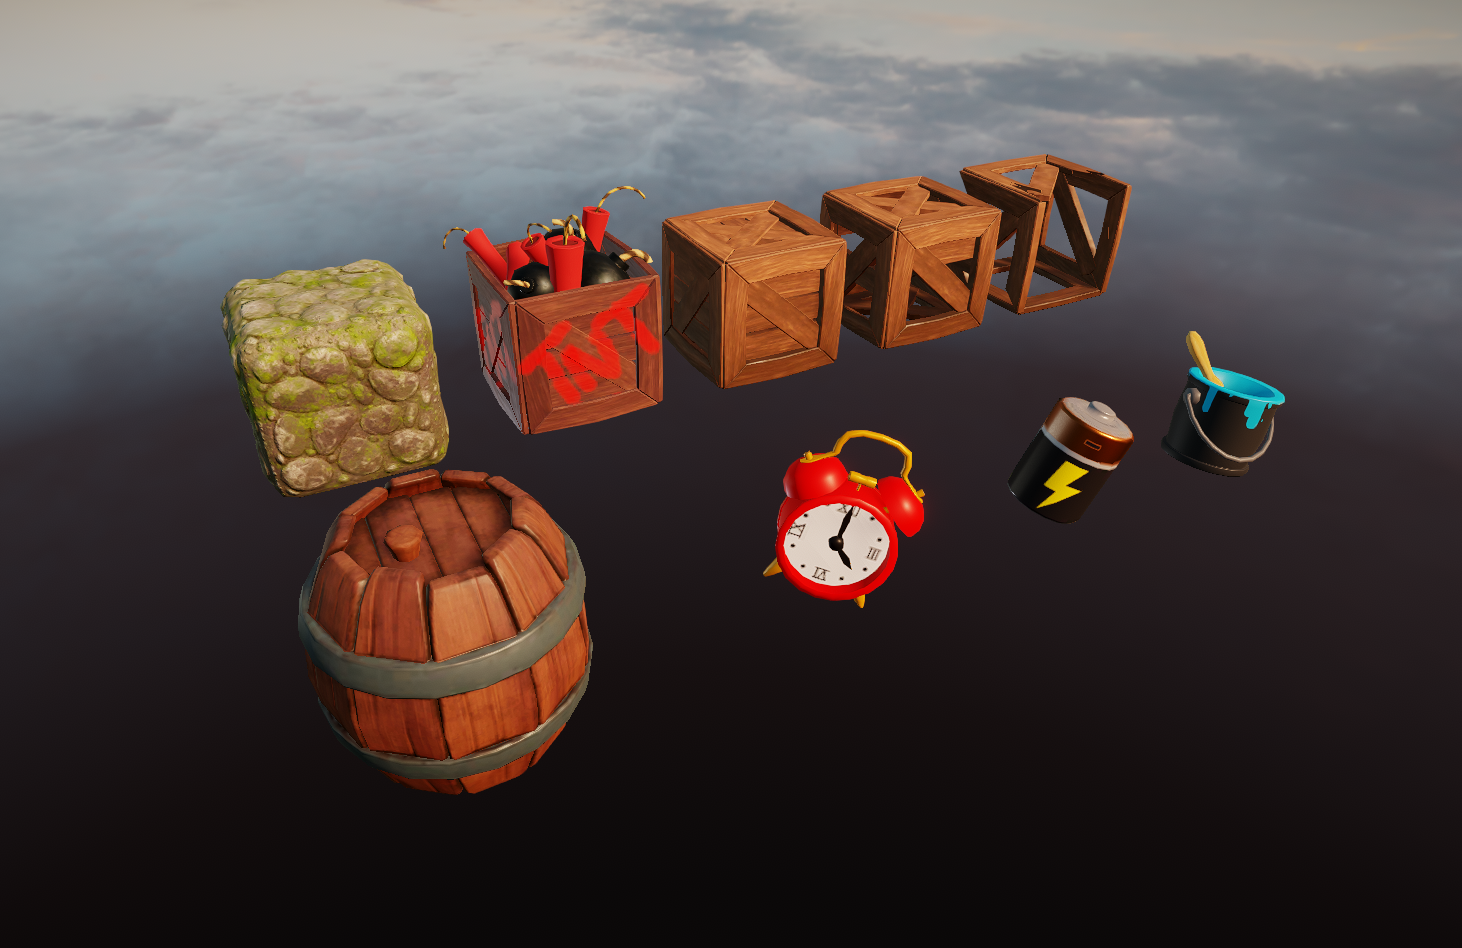 Environmental assets and props